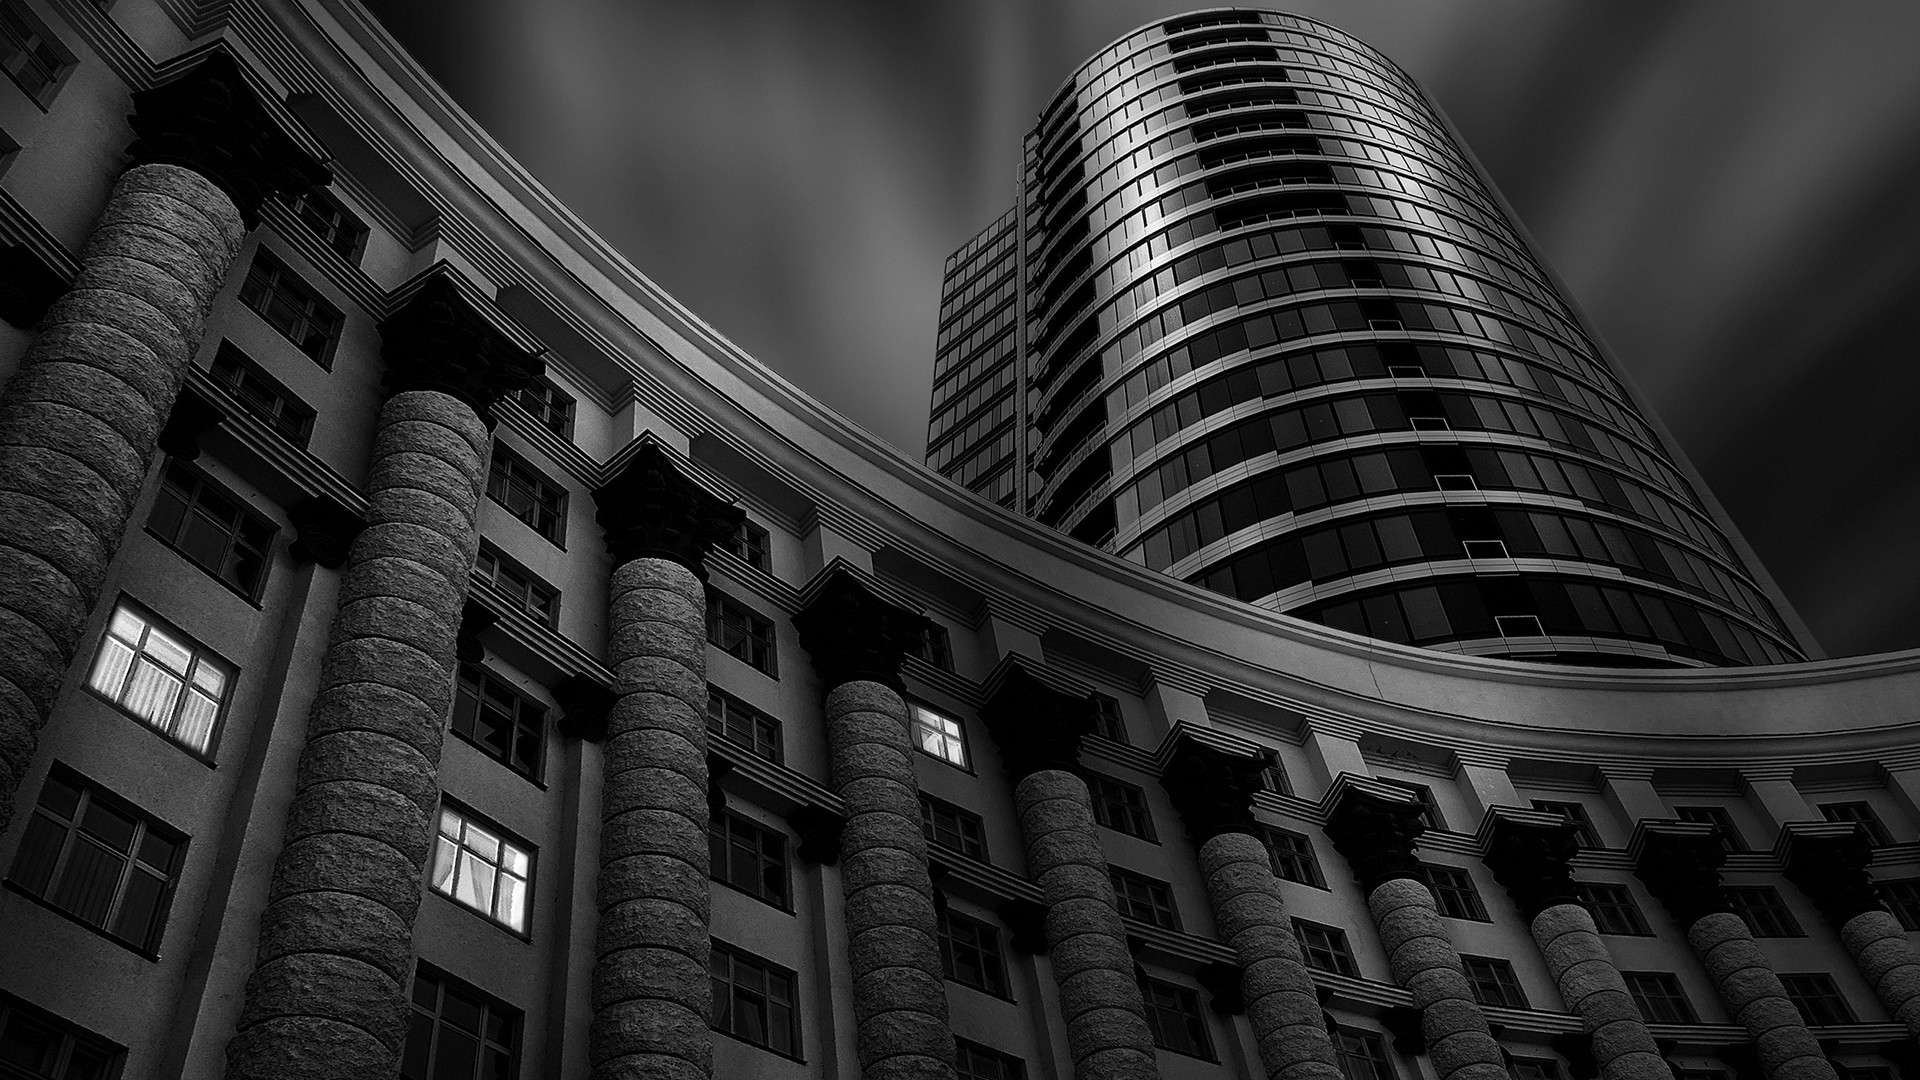 General 1920x1080 monochrome architecture modern building window clouds long exposure blurred